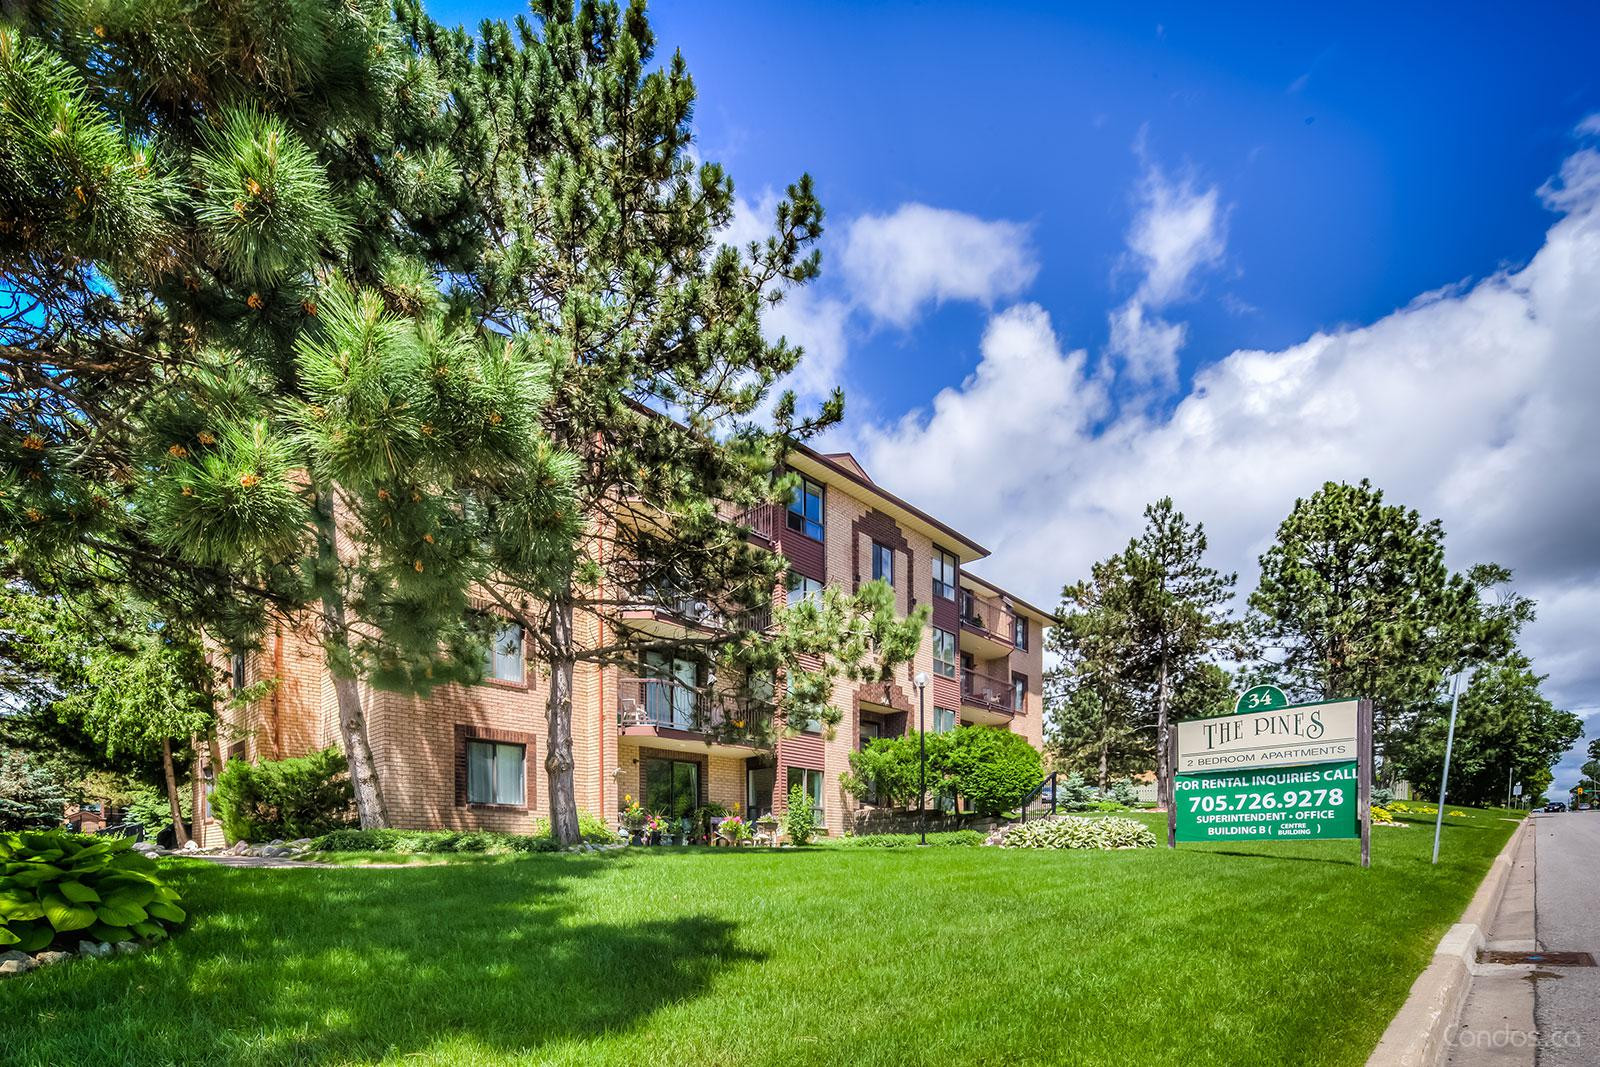 The Pines at 34 Johnson St, Barrie 1